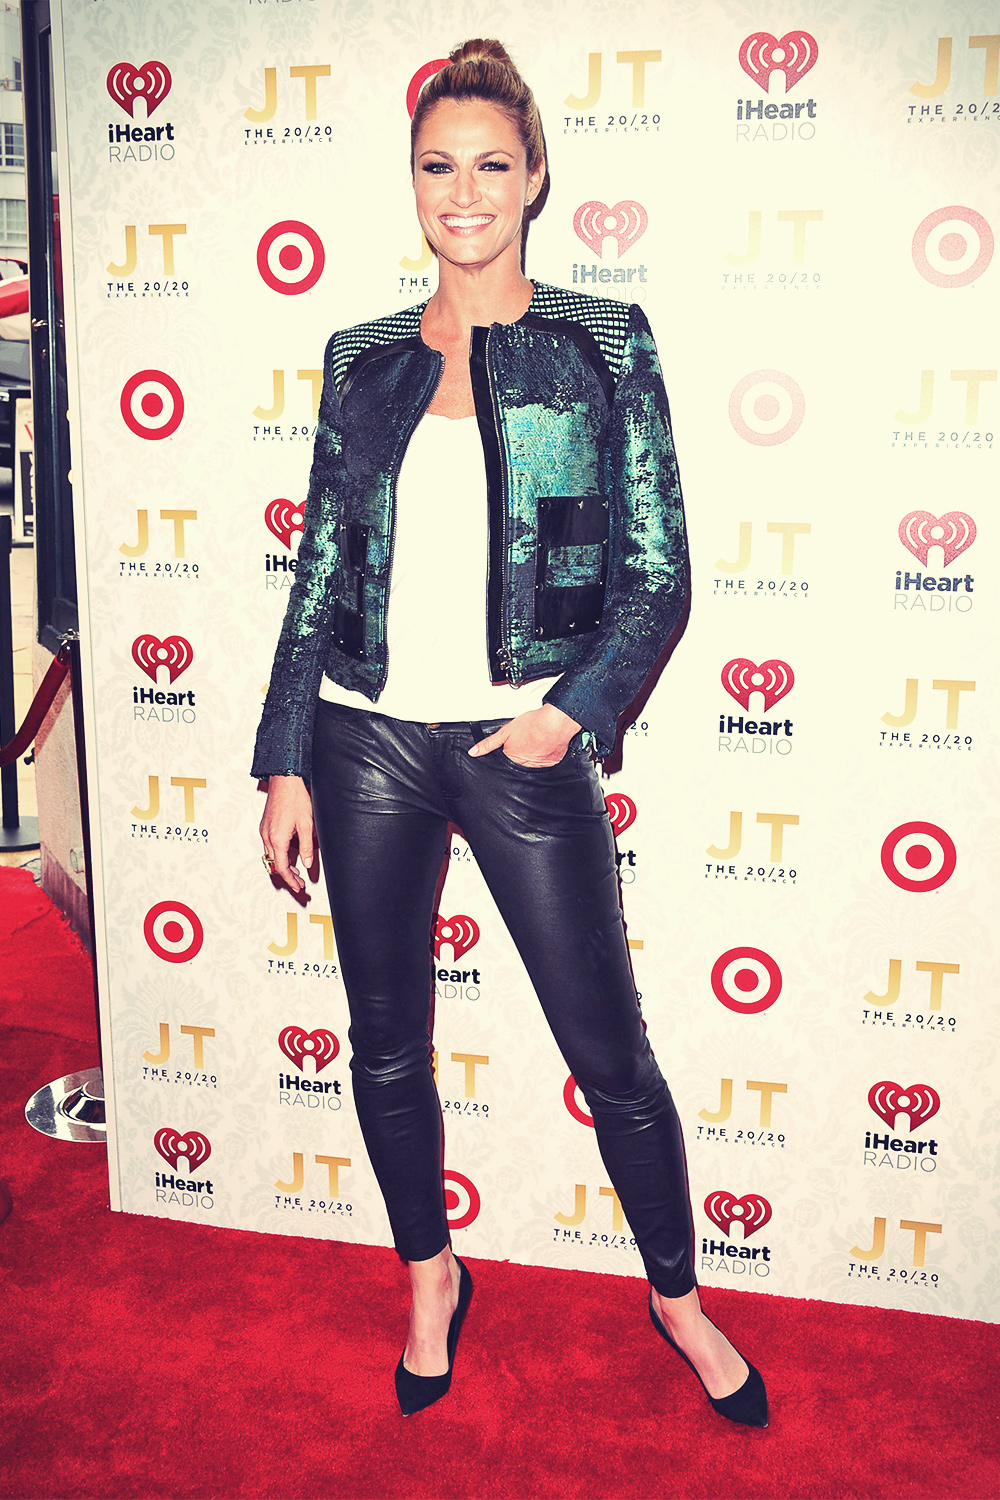 Erin Andrews arrives at the iHeartRadio